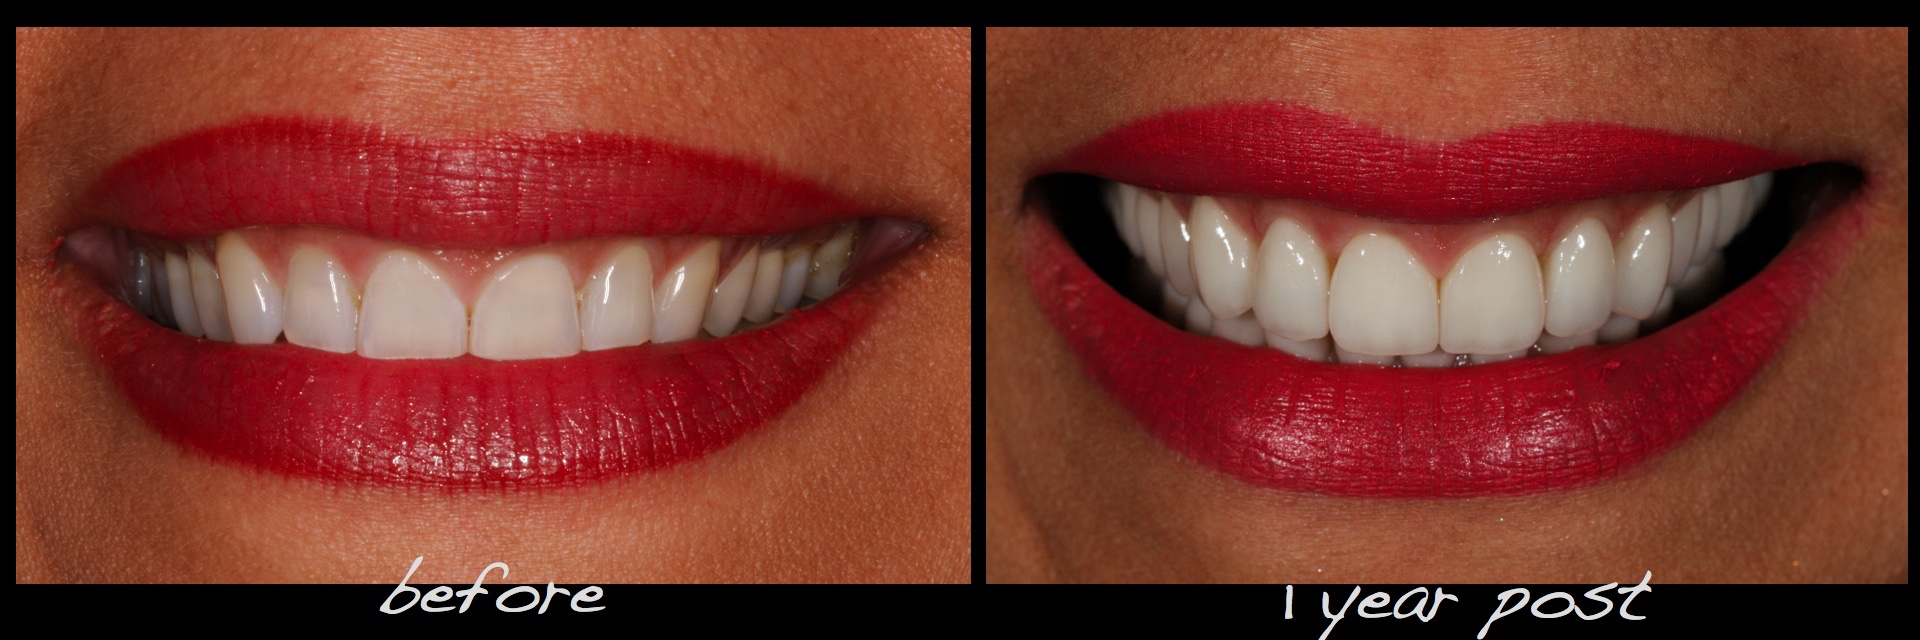 Full Mouth Dental Implants Reconstruction Conservative Alex Sasia.029